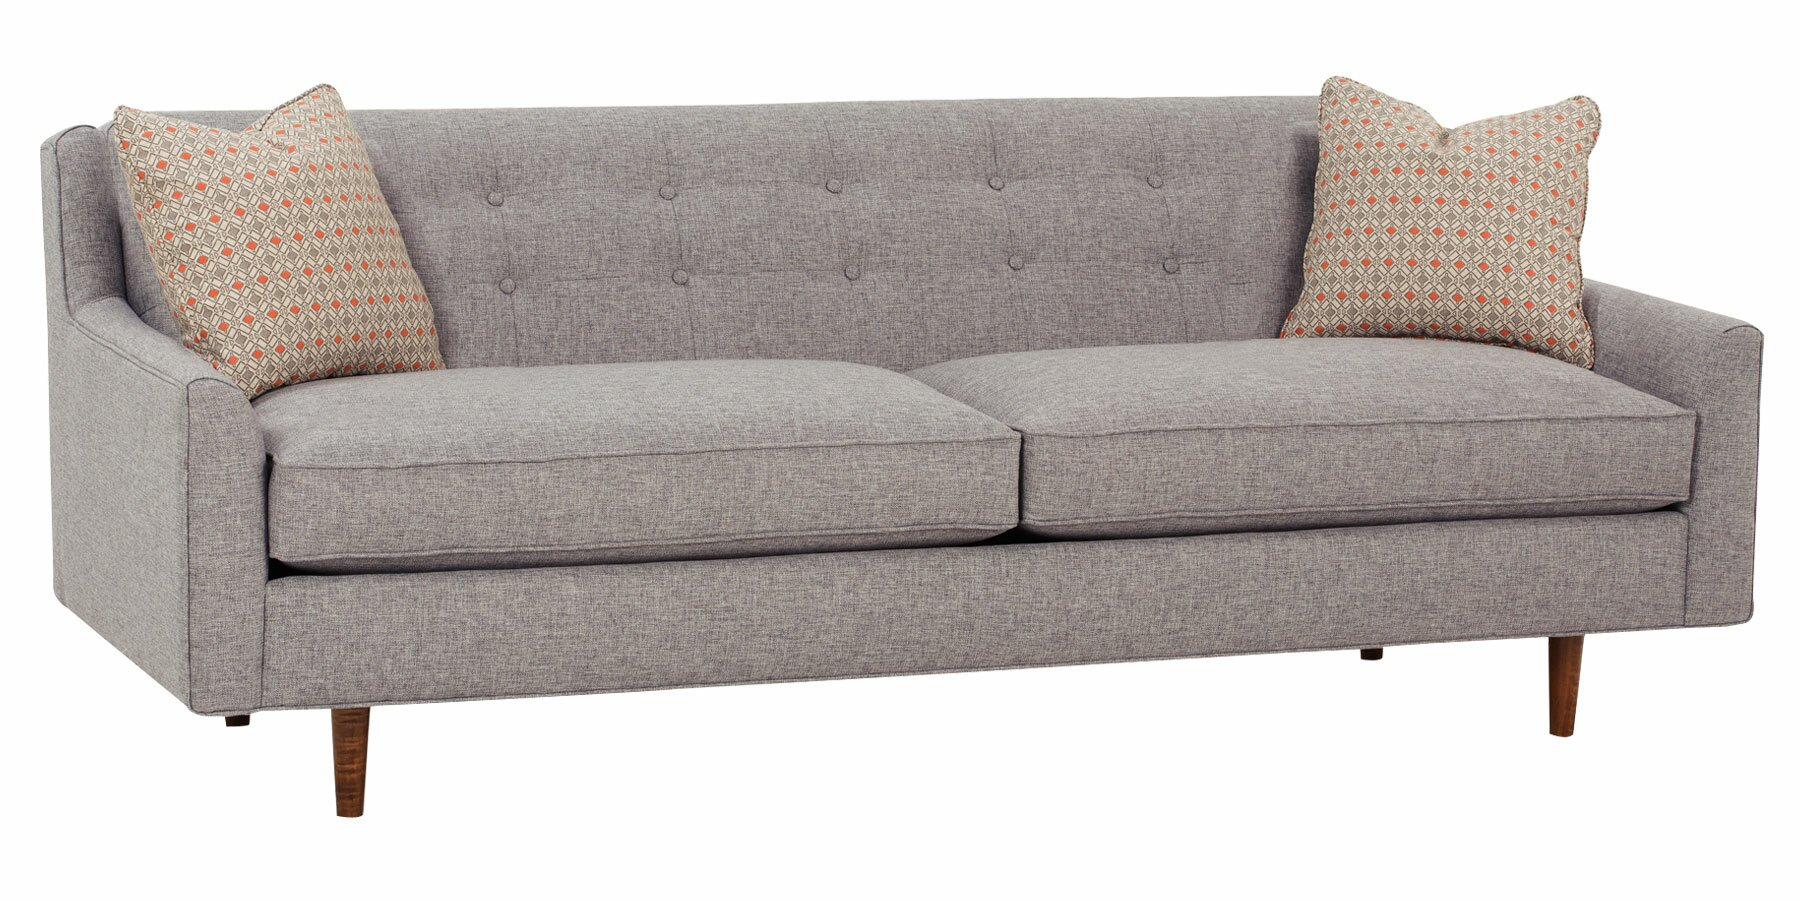 Danish modern sofas catchy mid century modern sleeper sofa for Contemporary sectional sofas